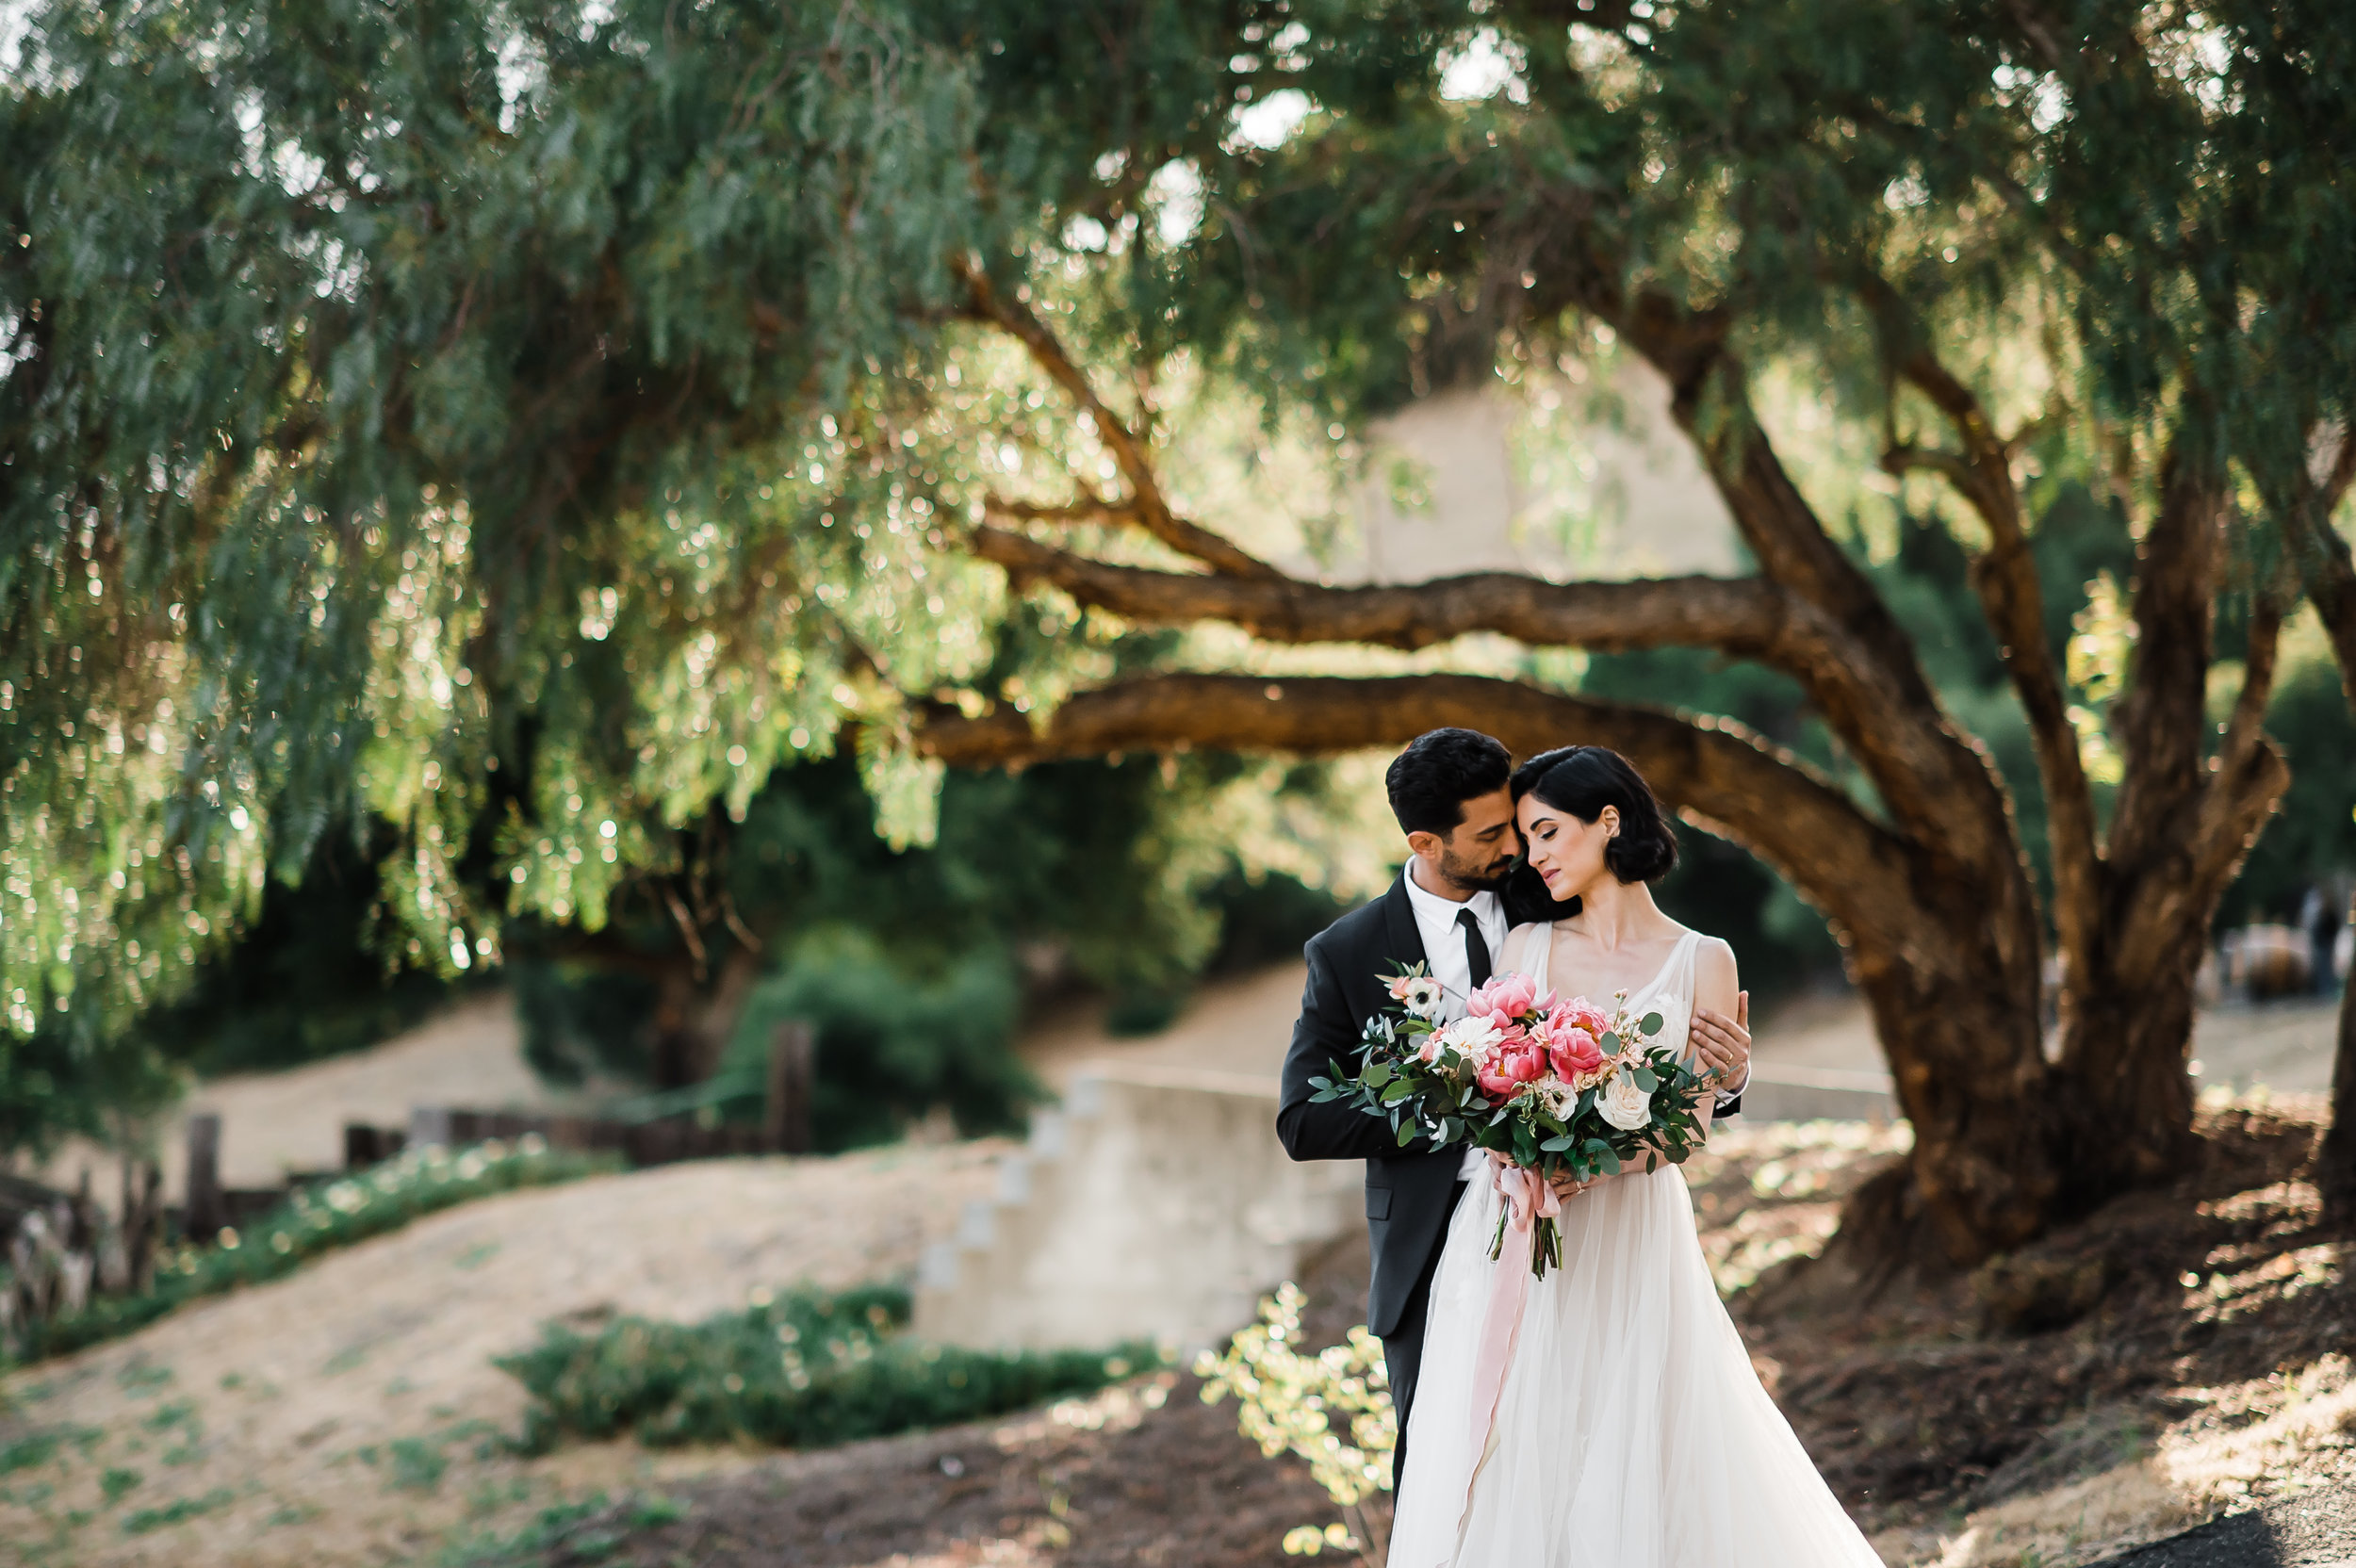 www.santabarbarawedding.com | Michelle Ramirez Photography | Zaca Creek | Wünderland Co. | Tangled Lotus | BHLDN | Sarah Naja | Julie Christy Lash+Makeup | Zara | Amad Ebrahimi | Bride and groom